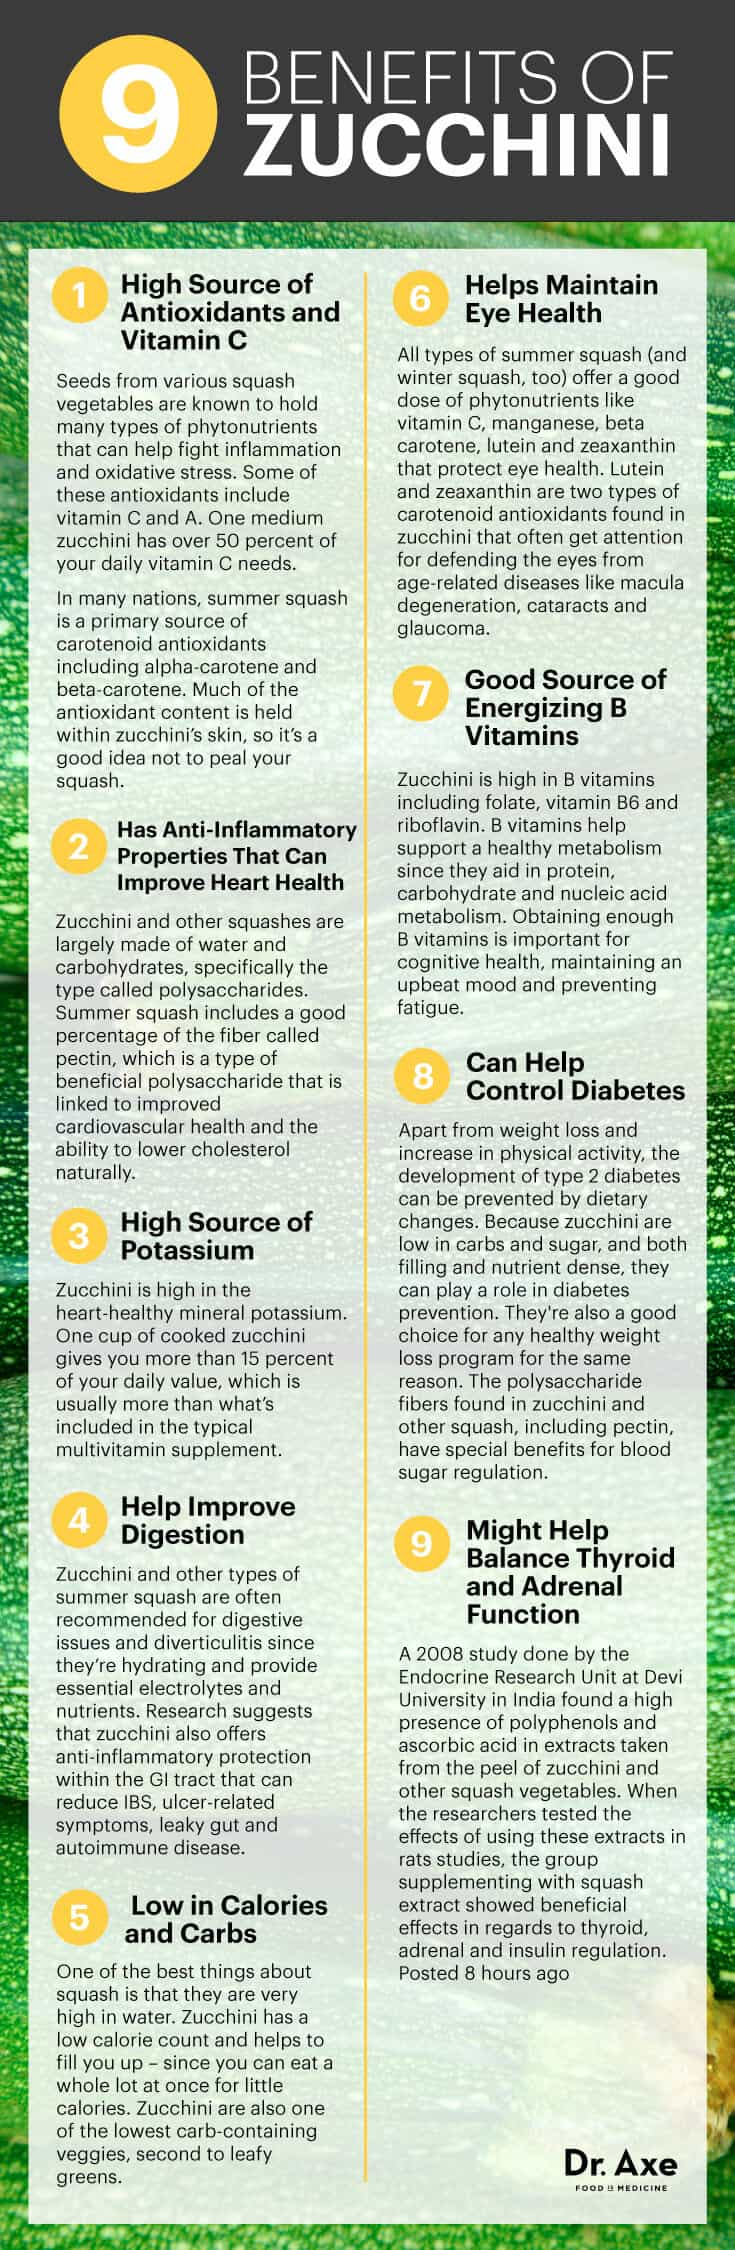 Zucchini benefits infographic - Dr. Axe